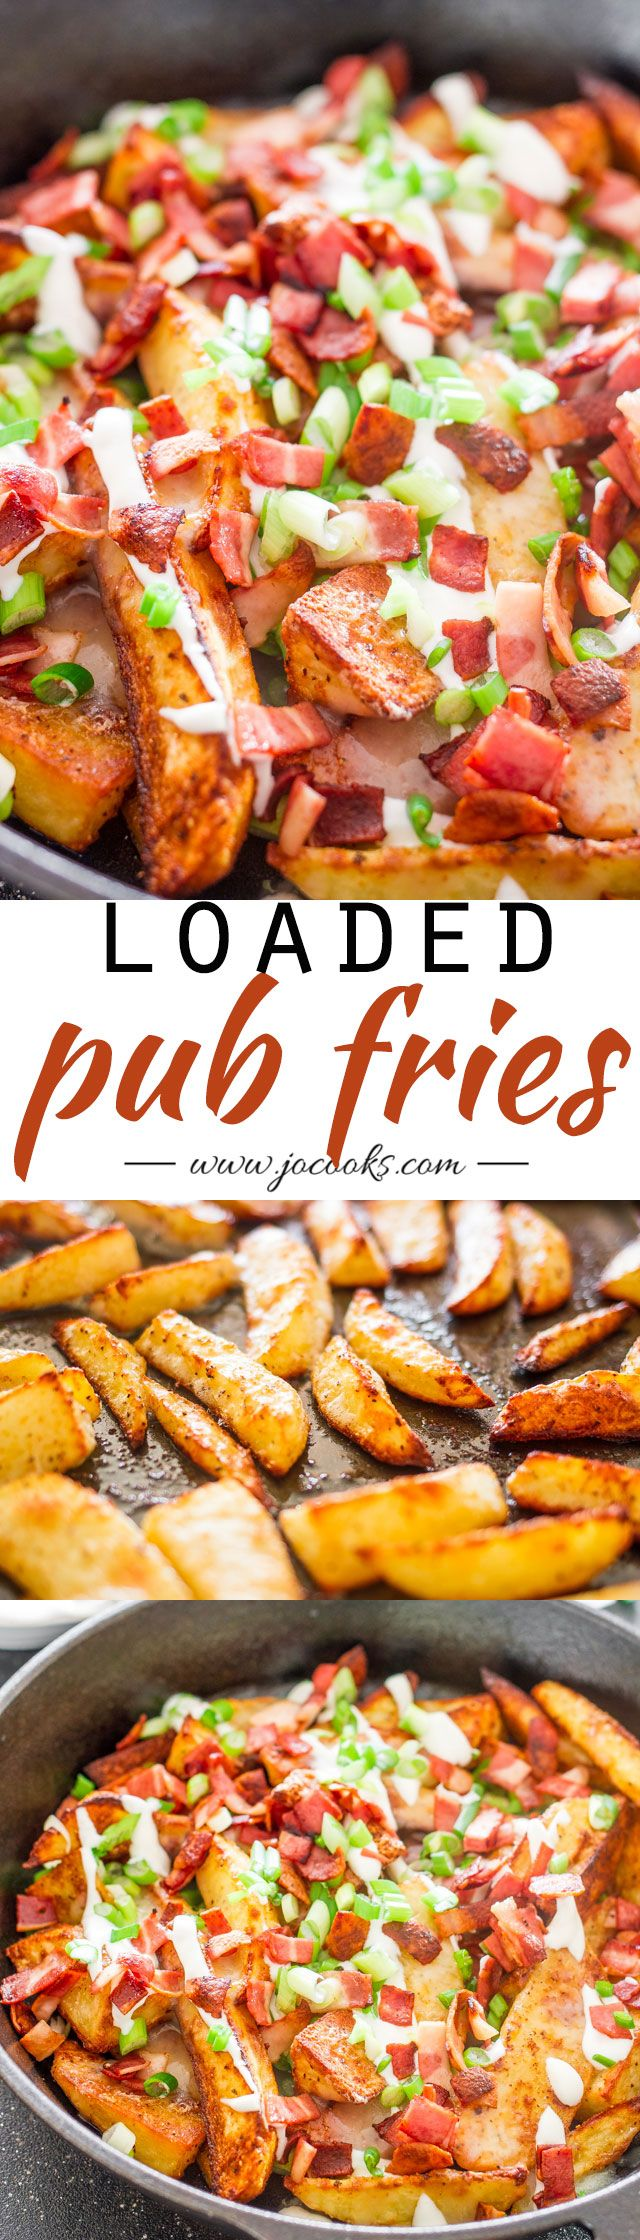 Loaded Pub Fries - just like the pub fries from your local pub, just made at home, healthier and yummier.